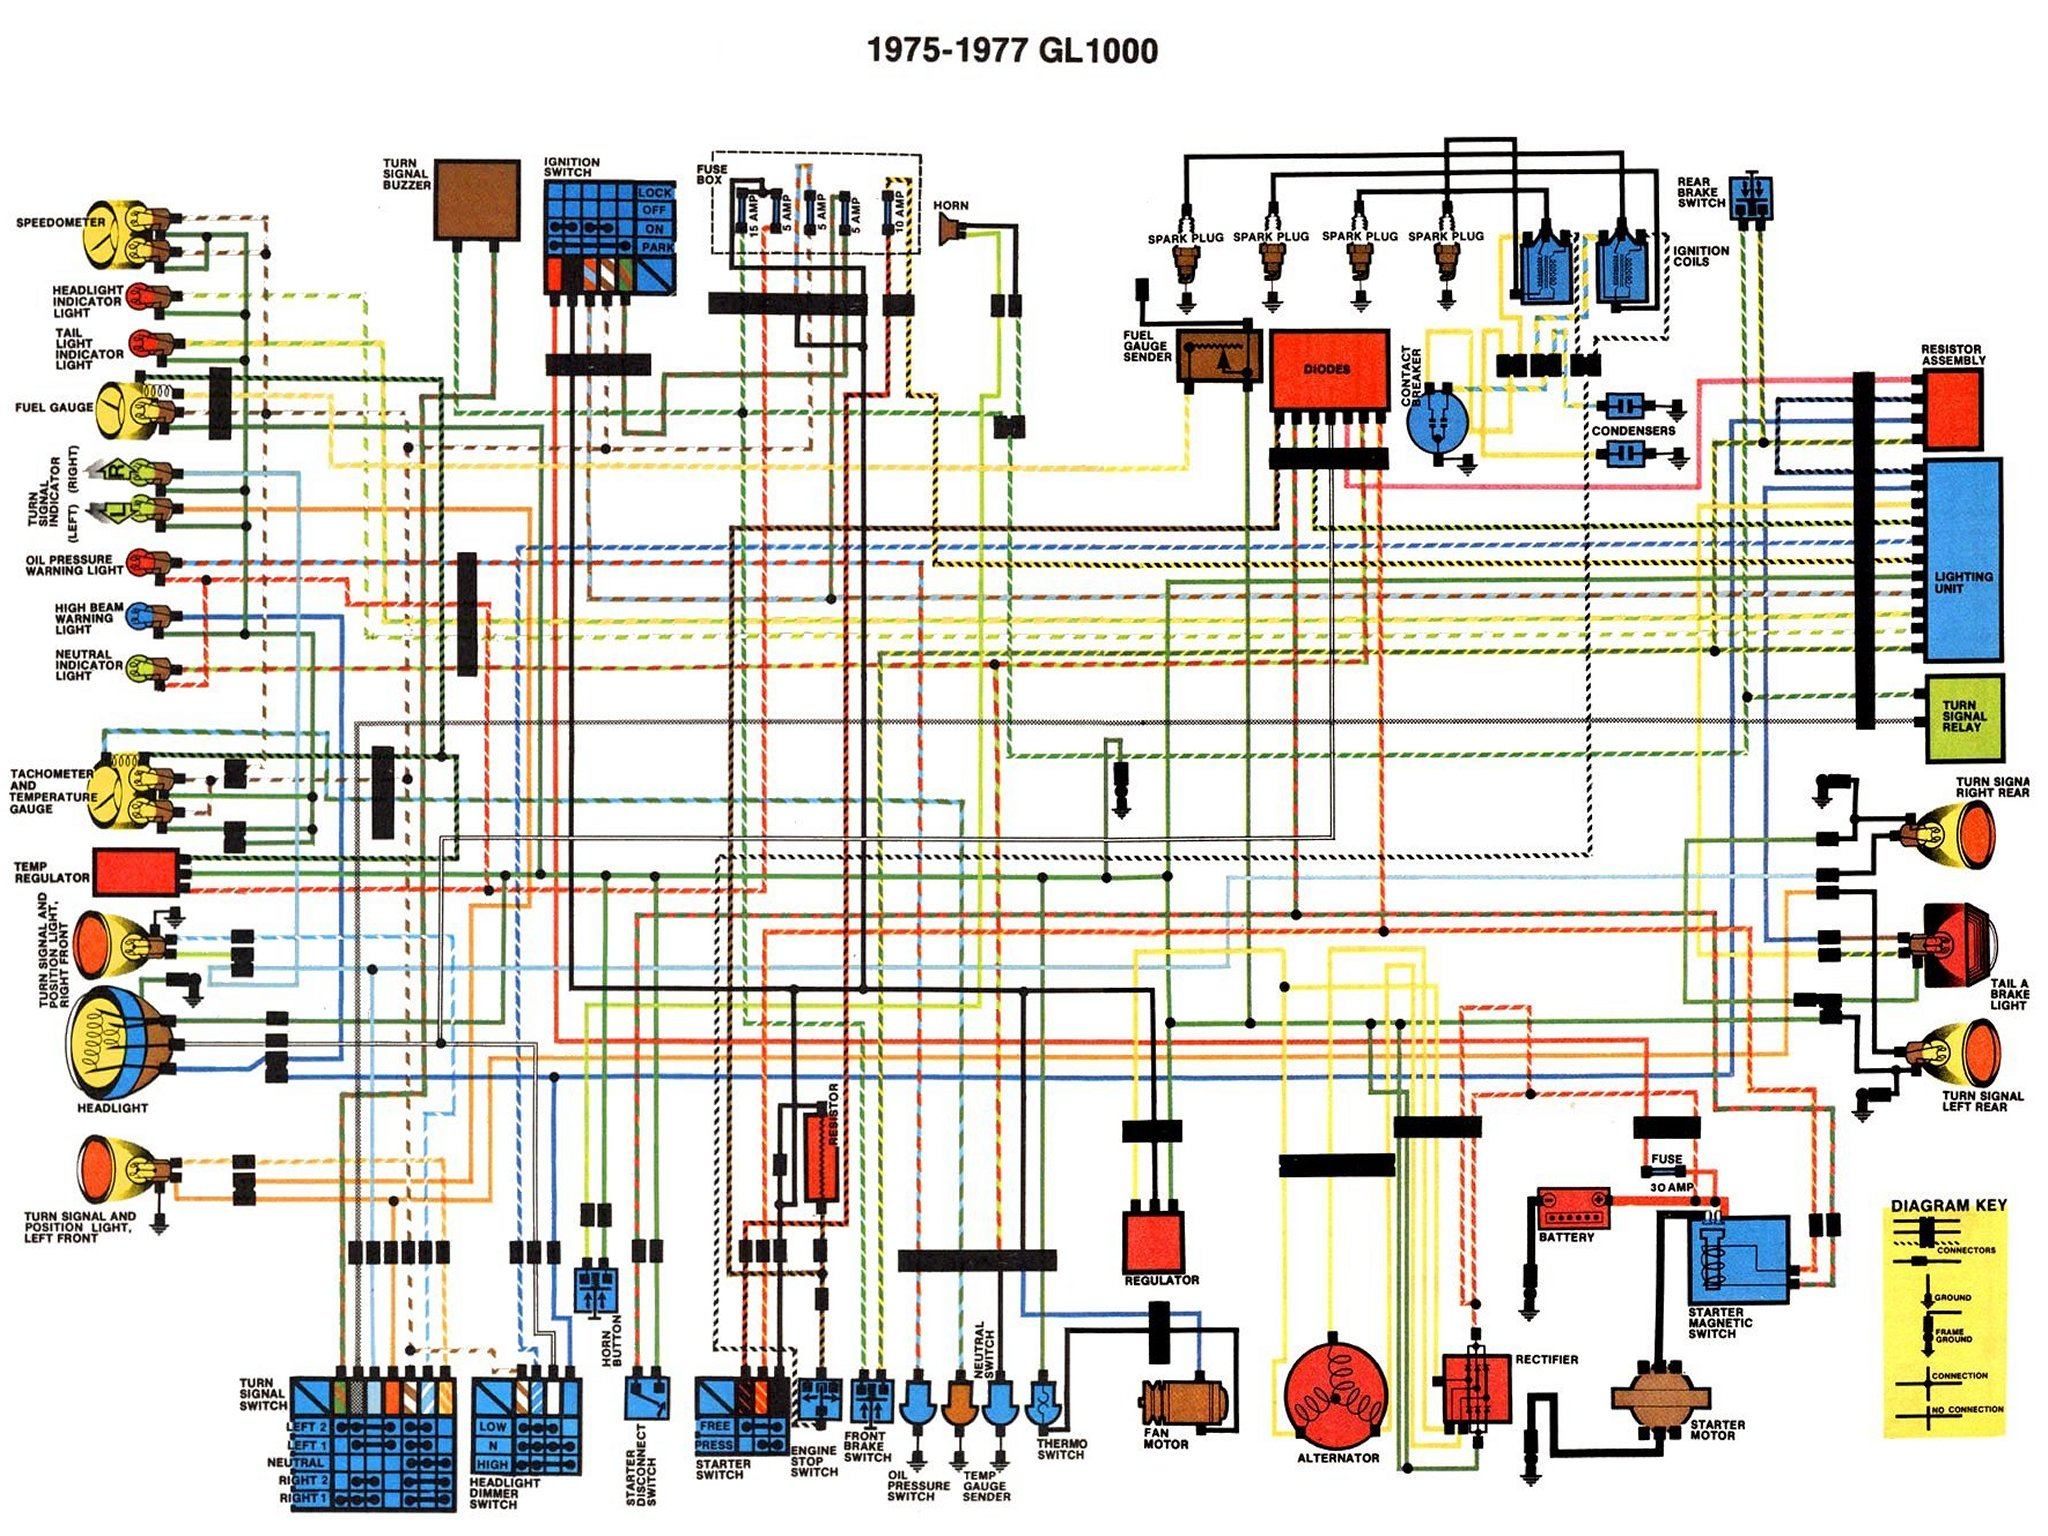 75 Chevy Caprice Wiring Diagram Electrical Diagrams 66 1966 Impala